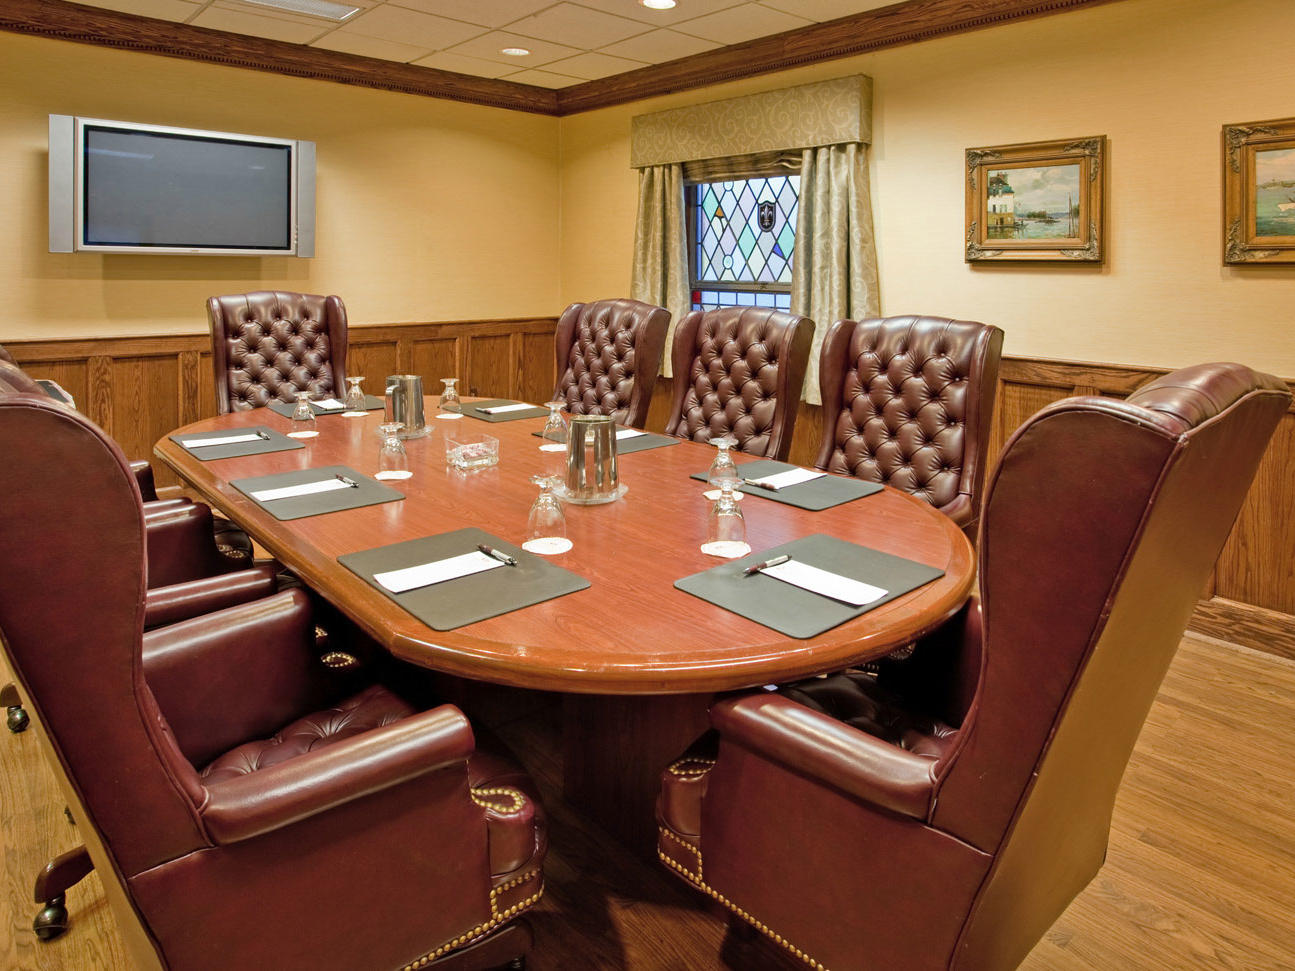 a large conference room table